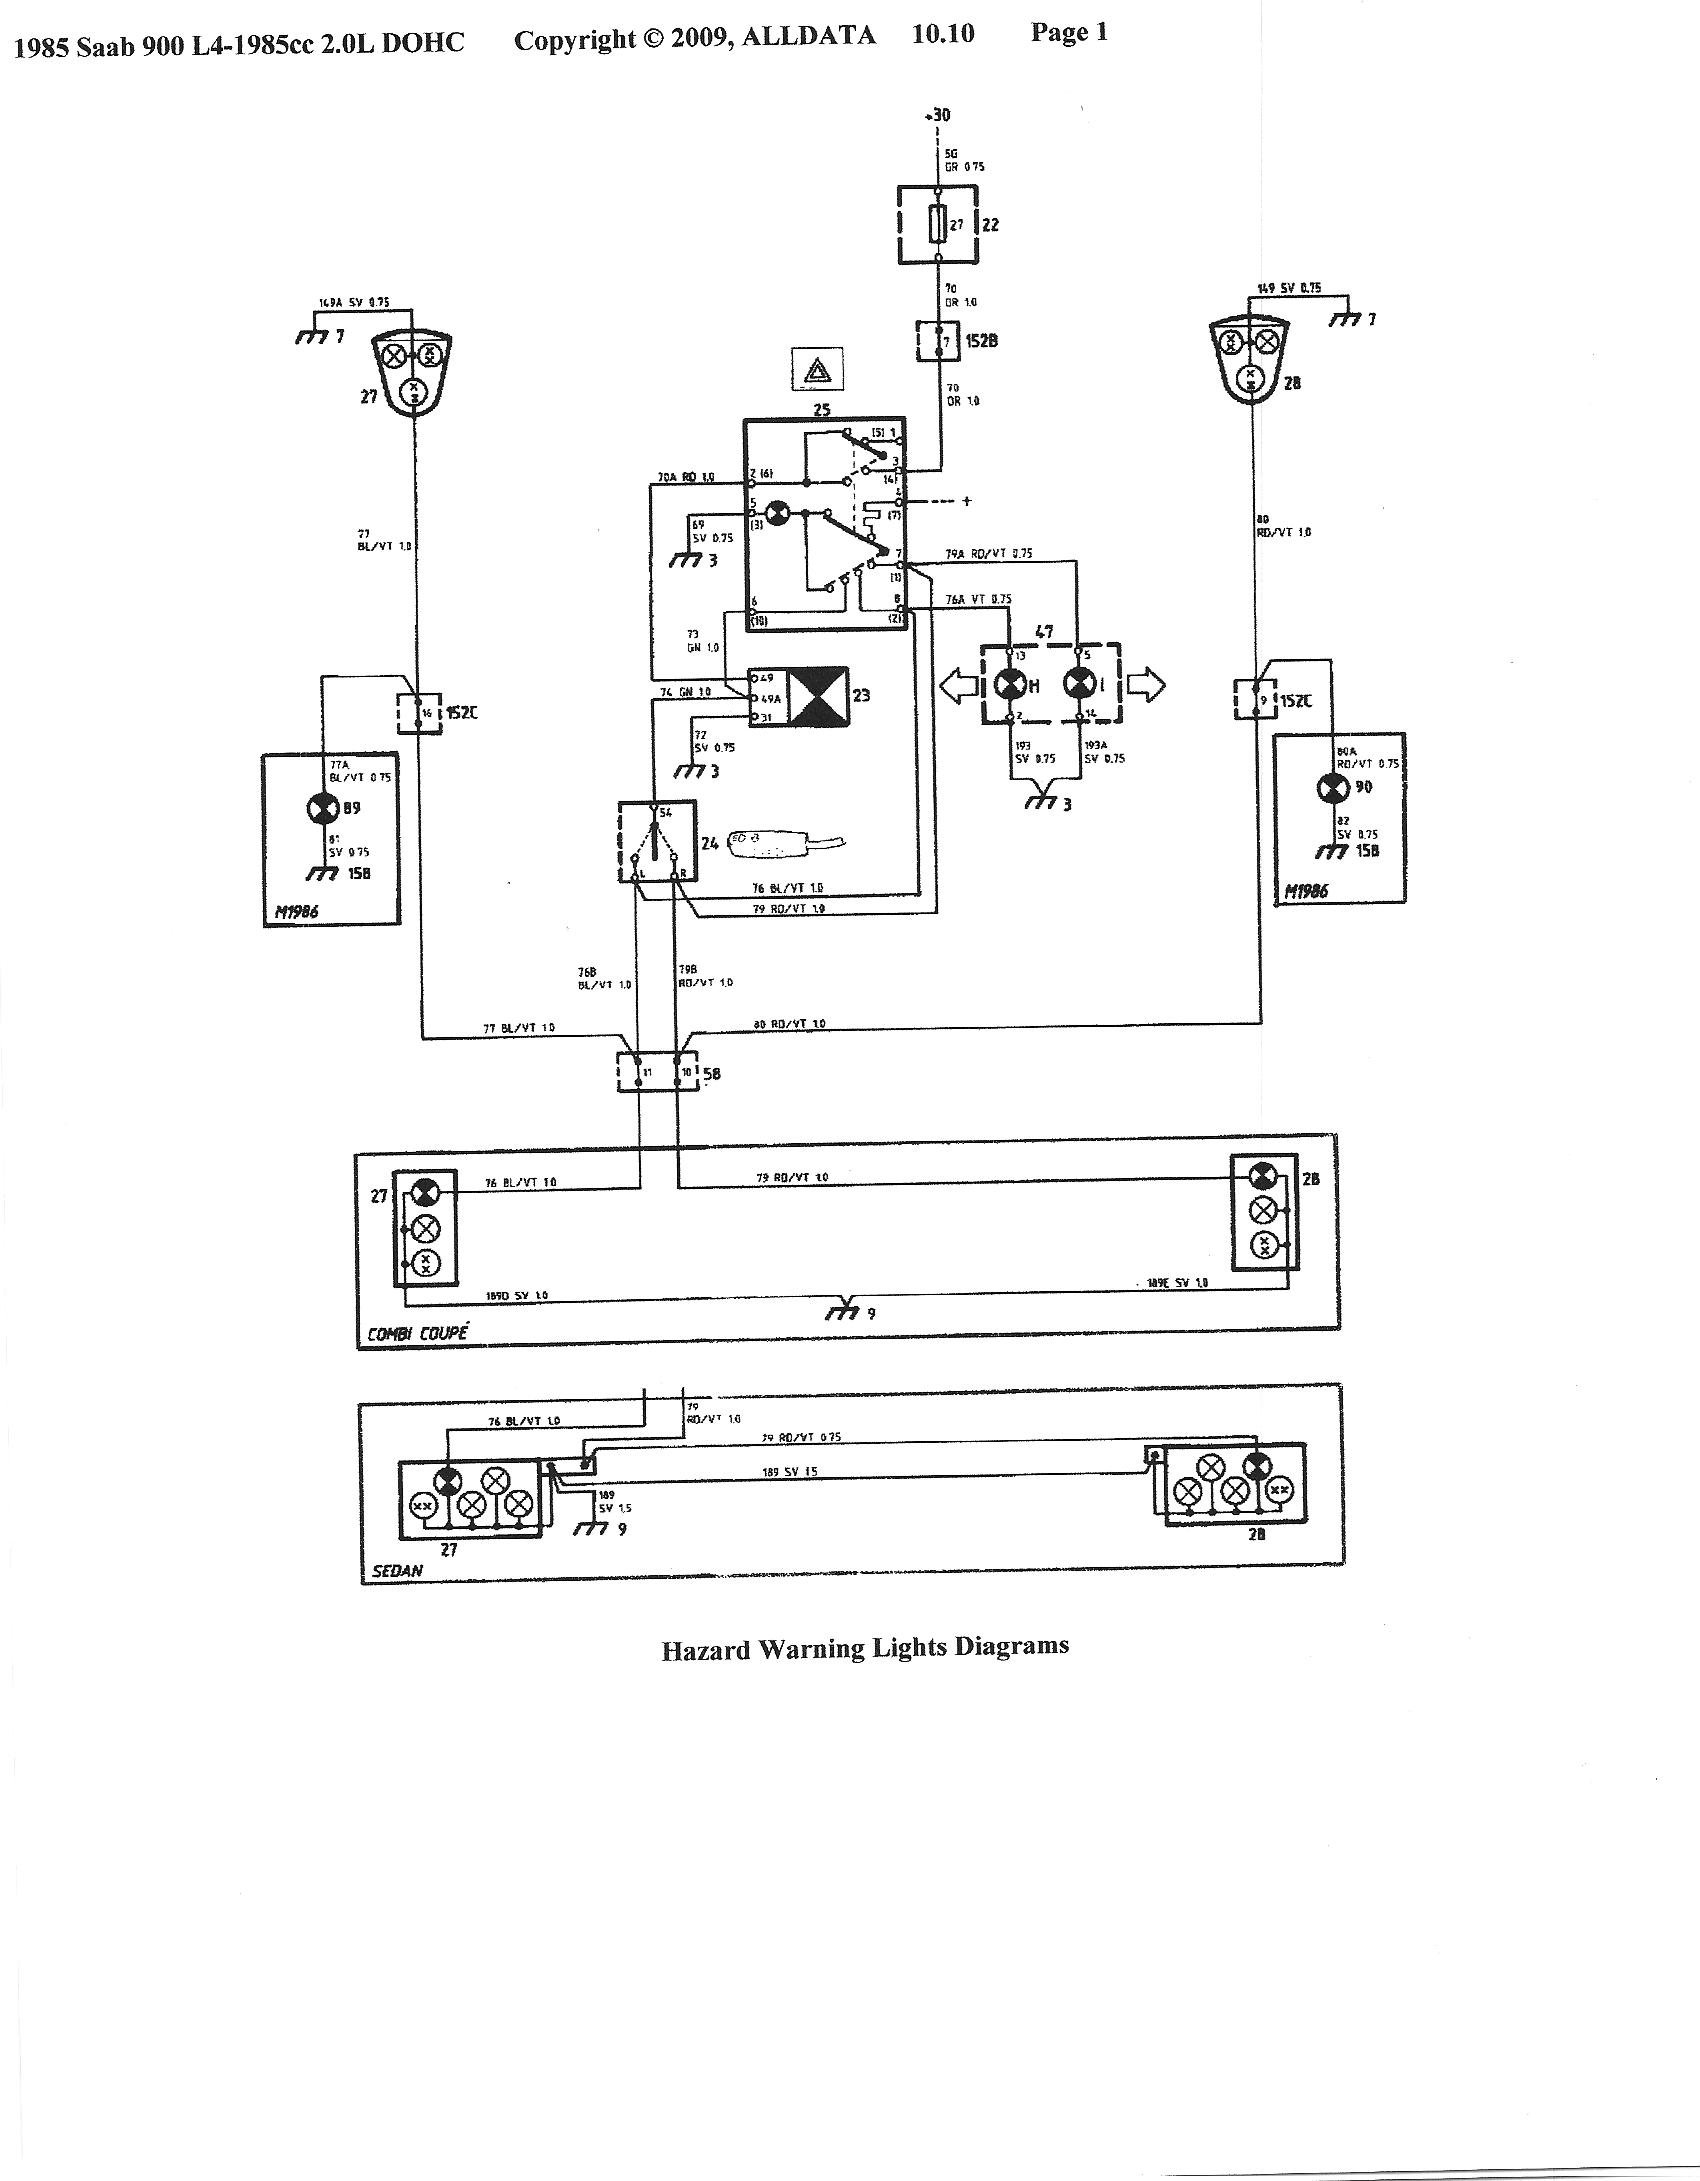 wiring diagram 1986 saab 900 turbo ignition switch saab 900 turbo wiring diagram #13